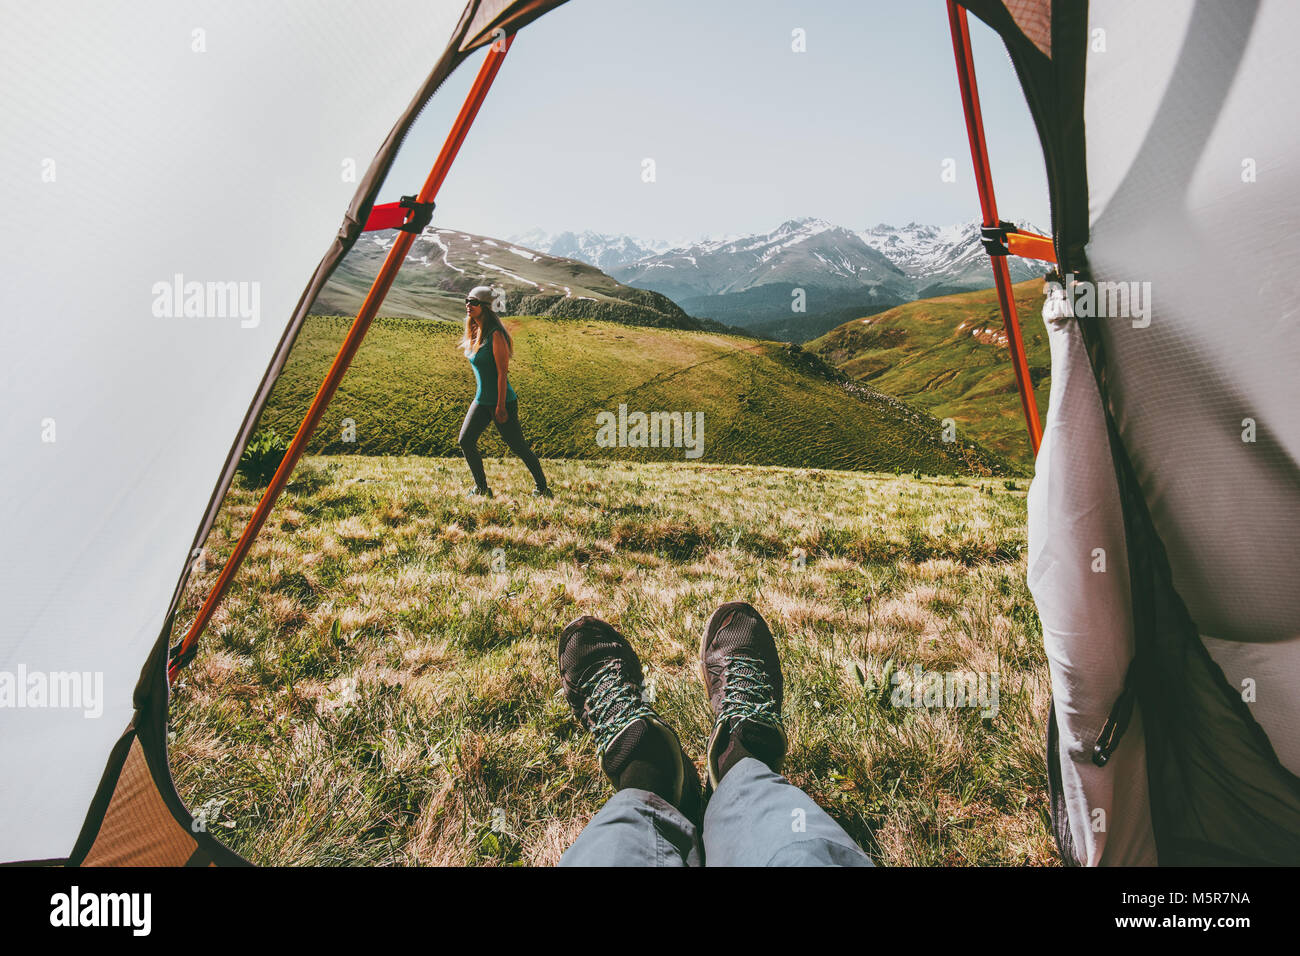 Camping couple traveling view from tent entrance woman walking in mountains man feet relaxing inside Lifestyle concept - Stock Image